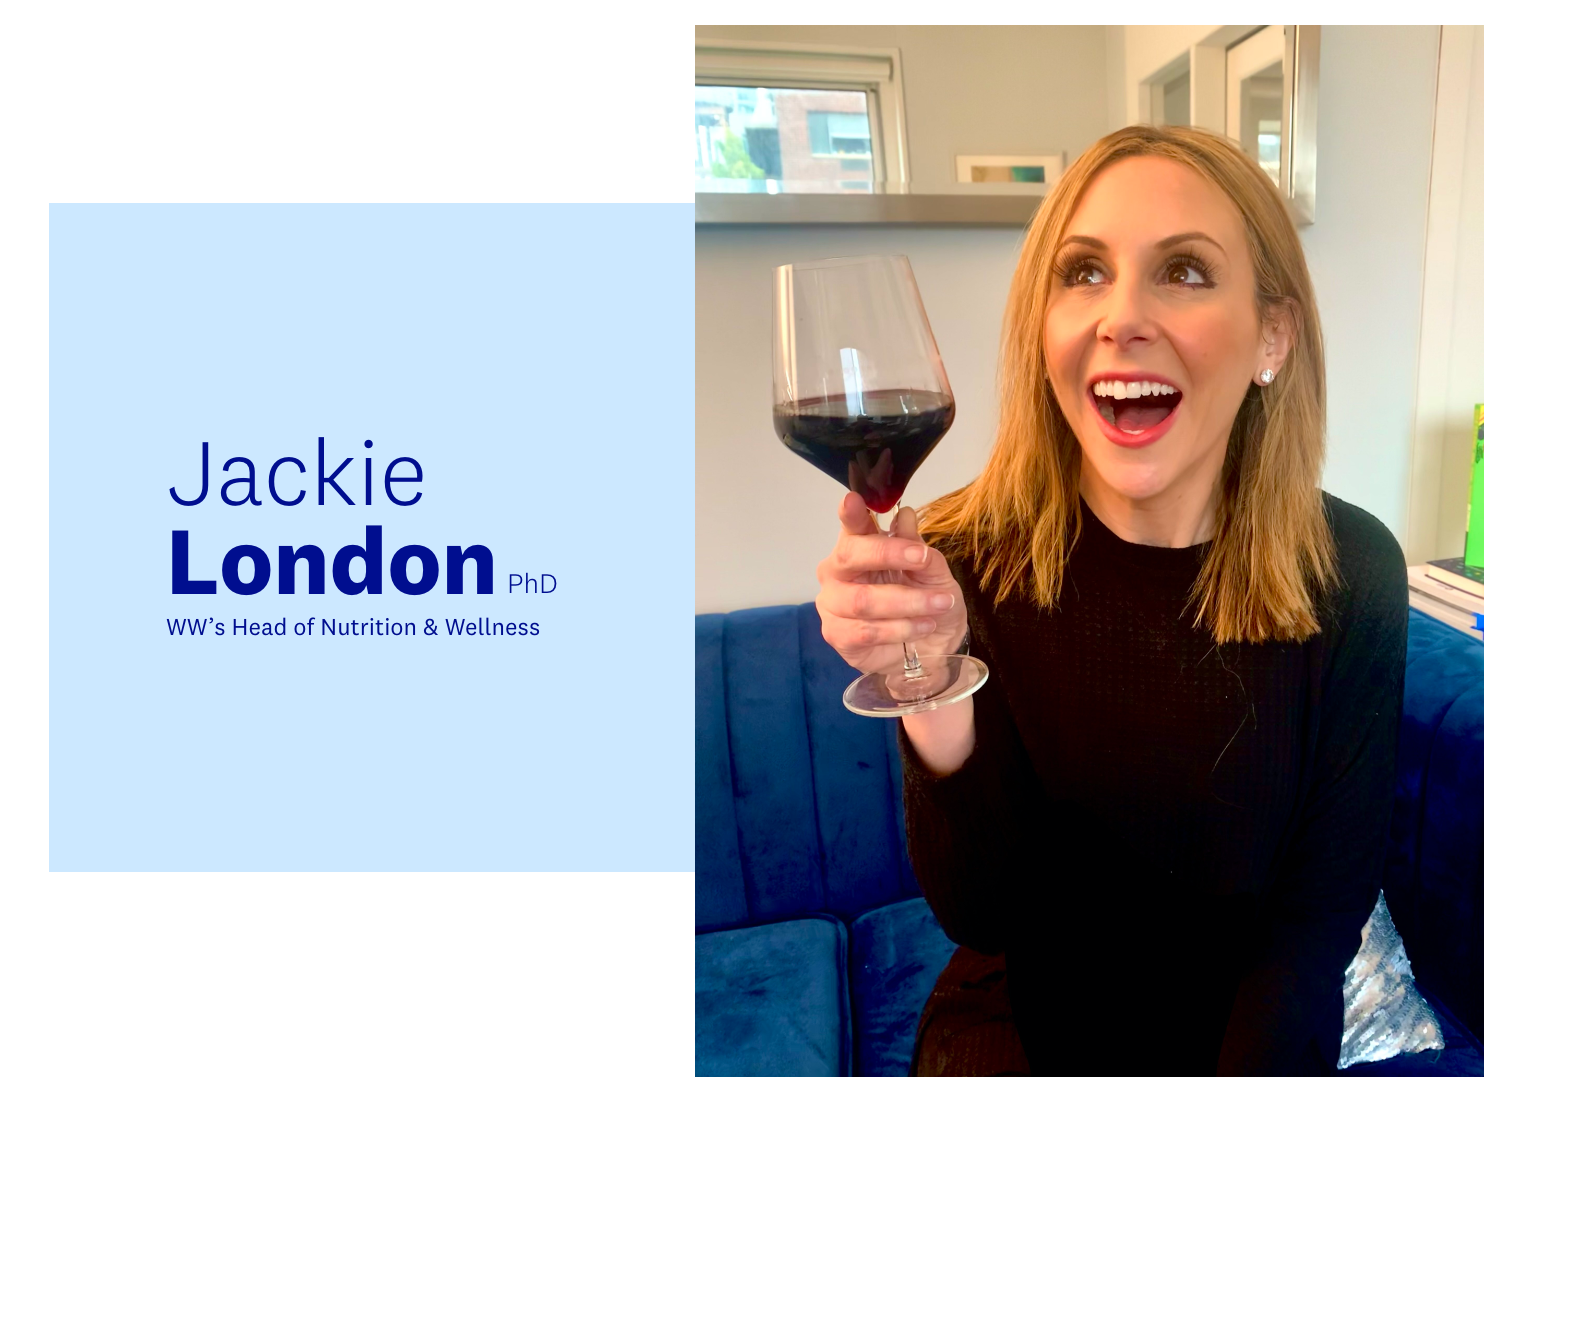 WW Head of Nutrition and Wellness Jackie London is holding a glass of red wine.